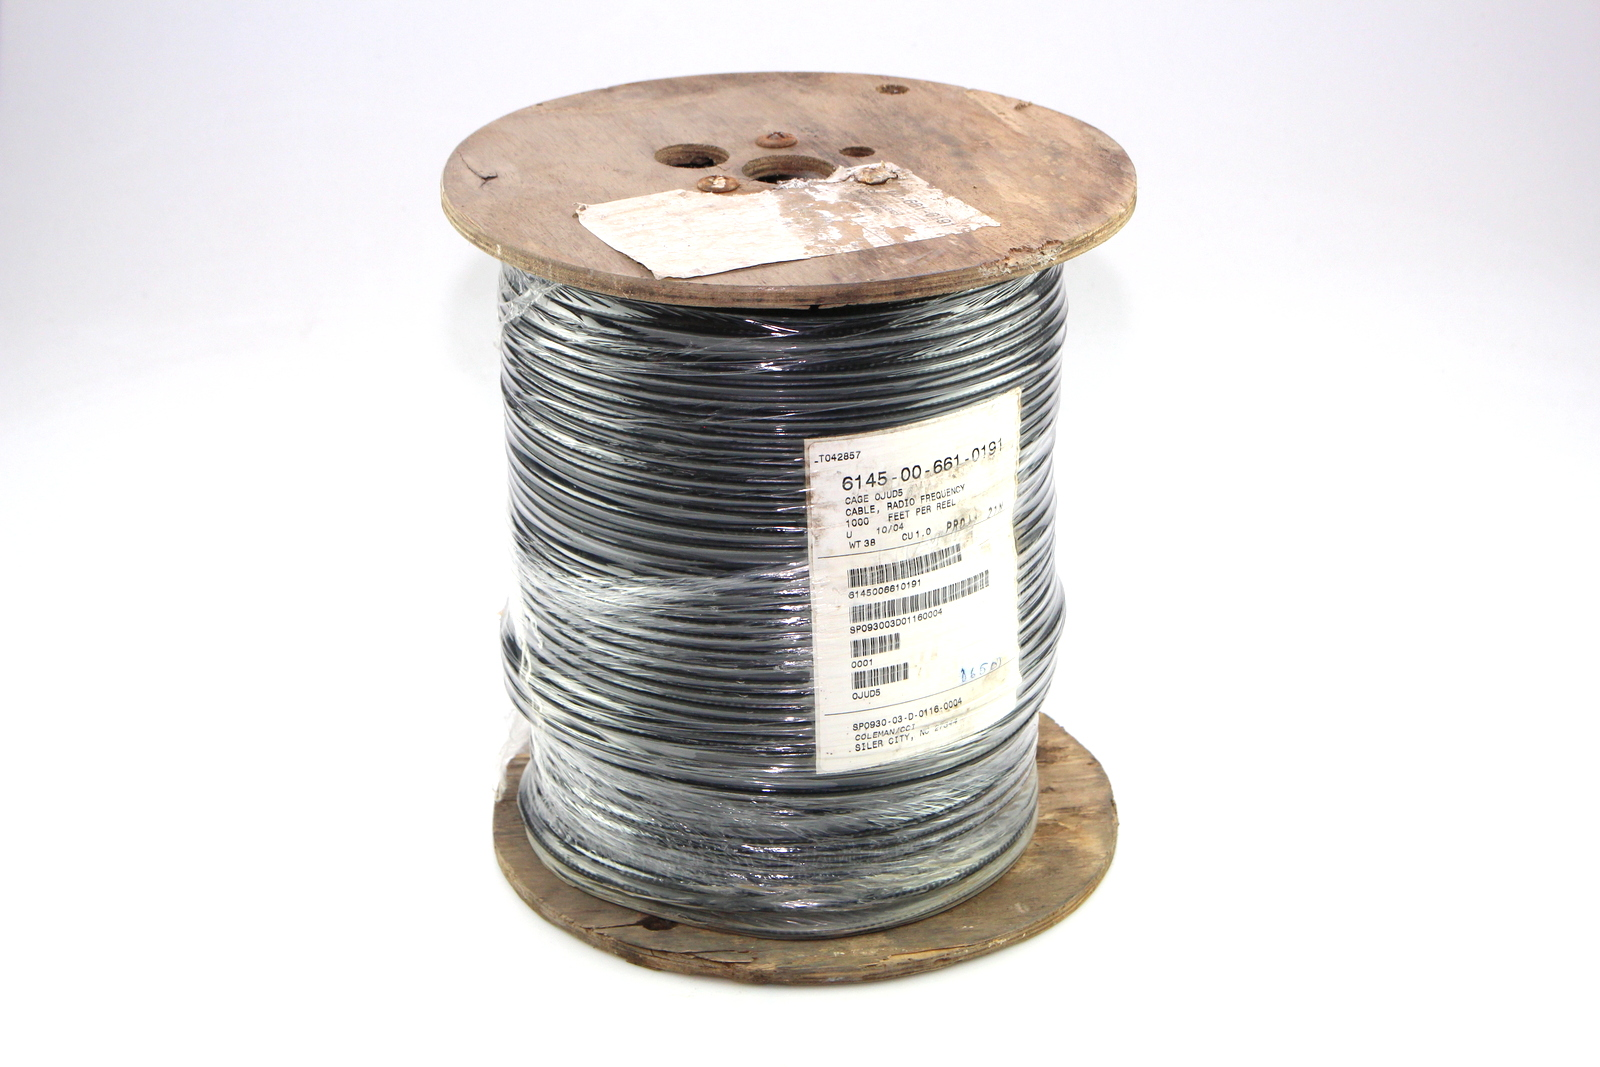 COLEMAN CABLE RF CABLE # M17/29-RG59 NSN: 6145-00-661-0191 ( 1000 FT ...